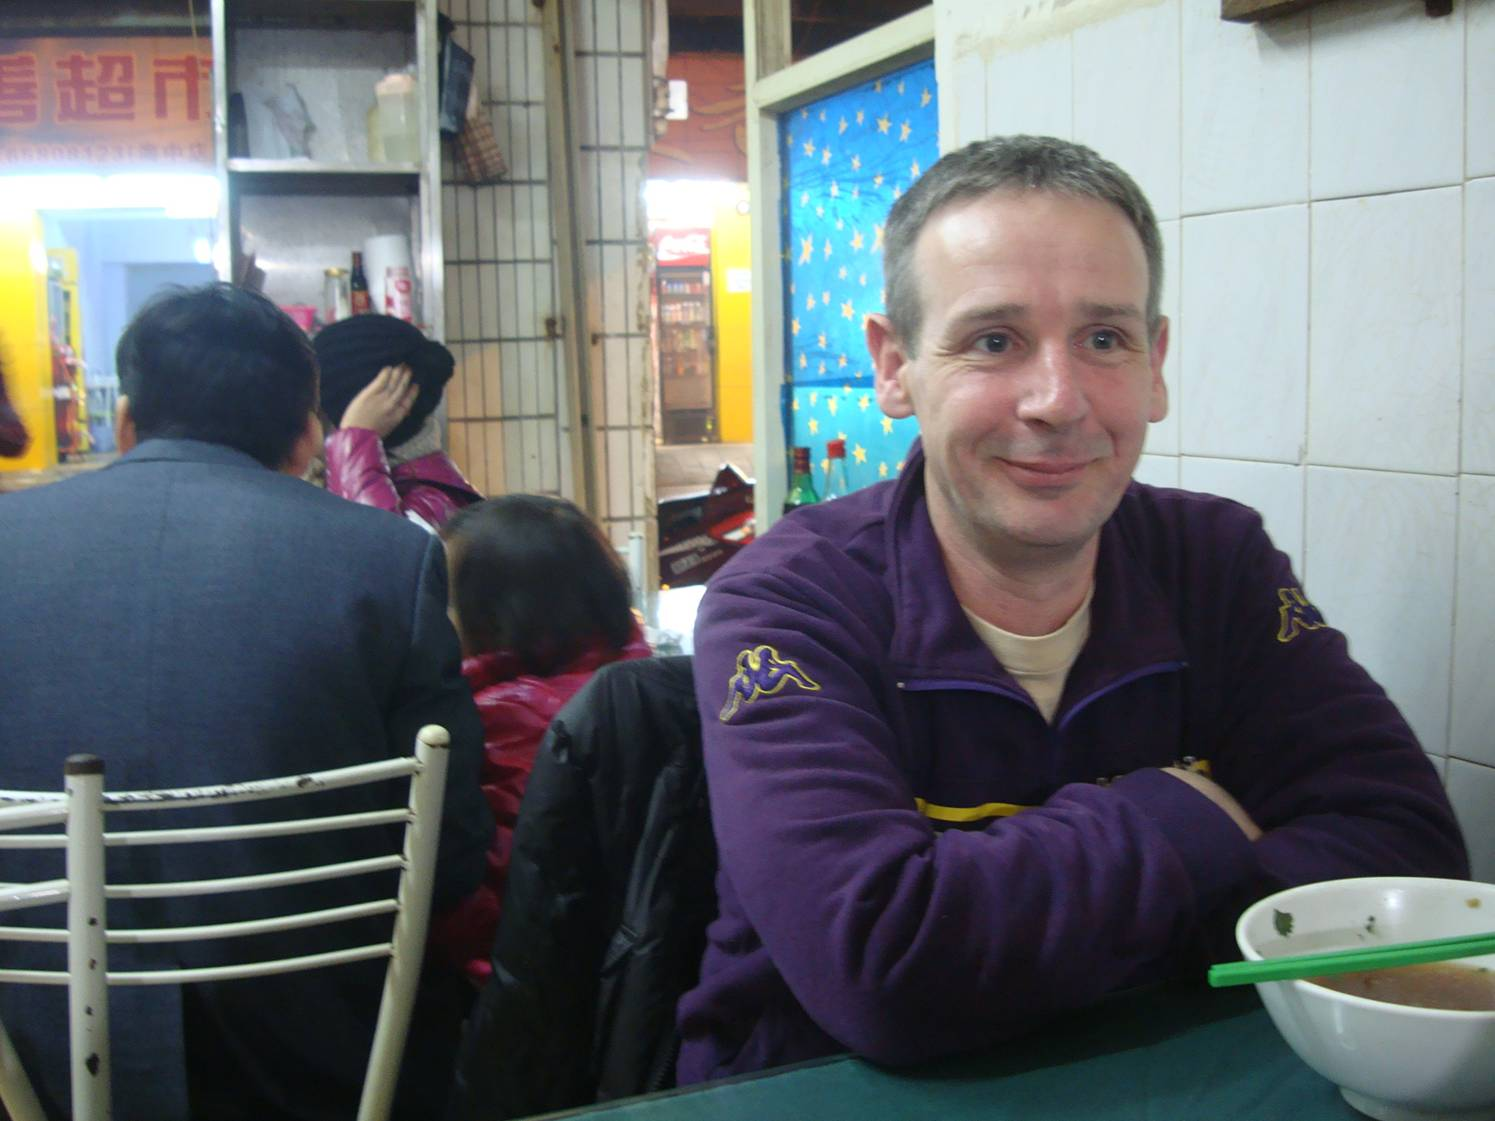 Picture:  Patrick made sure we could find a good restuarant.  Haikou, Hainan Island, China.